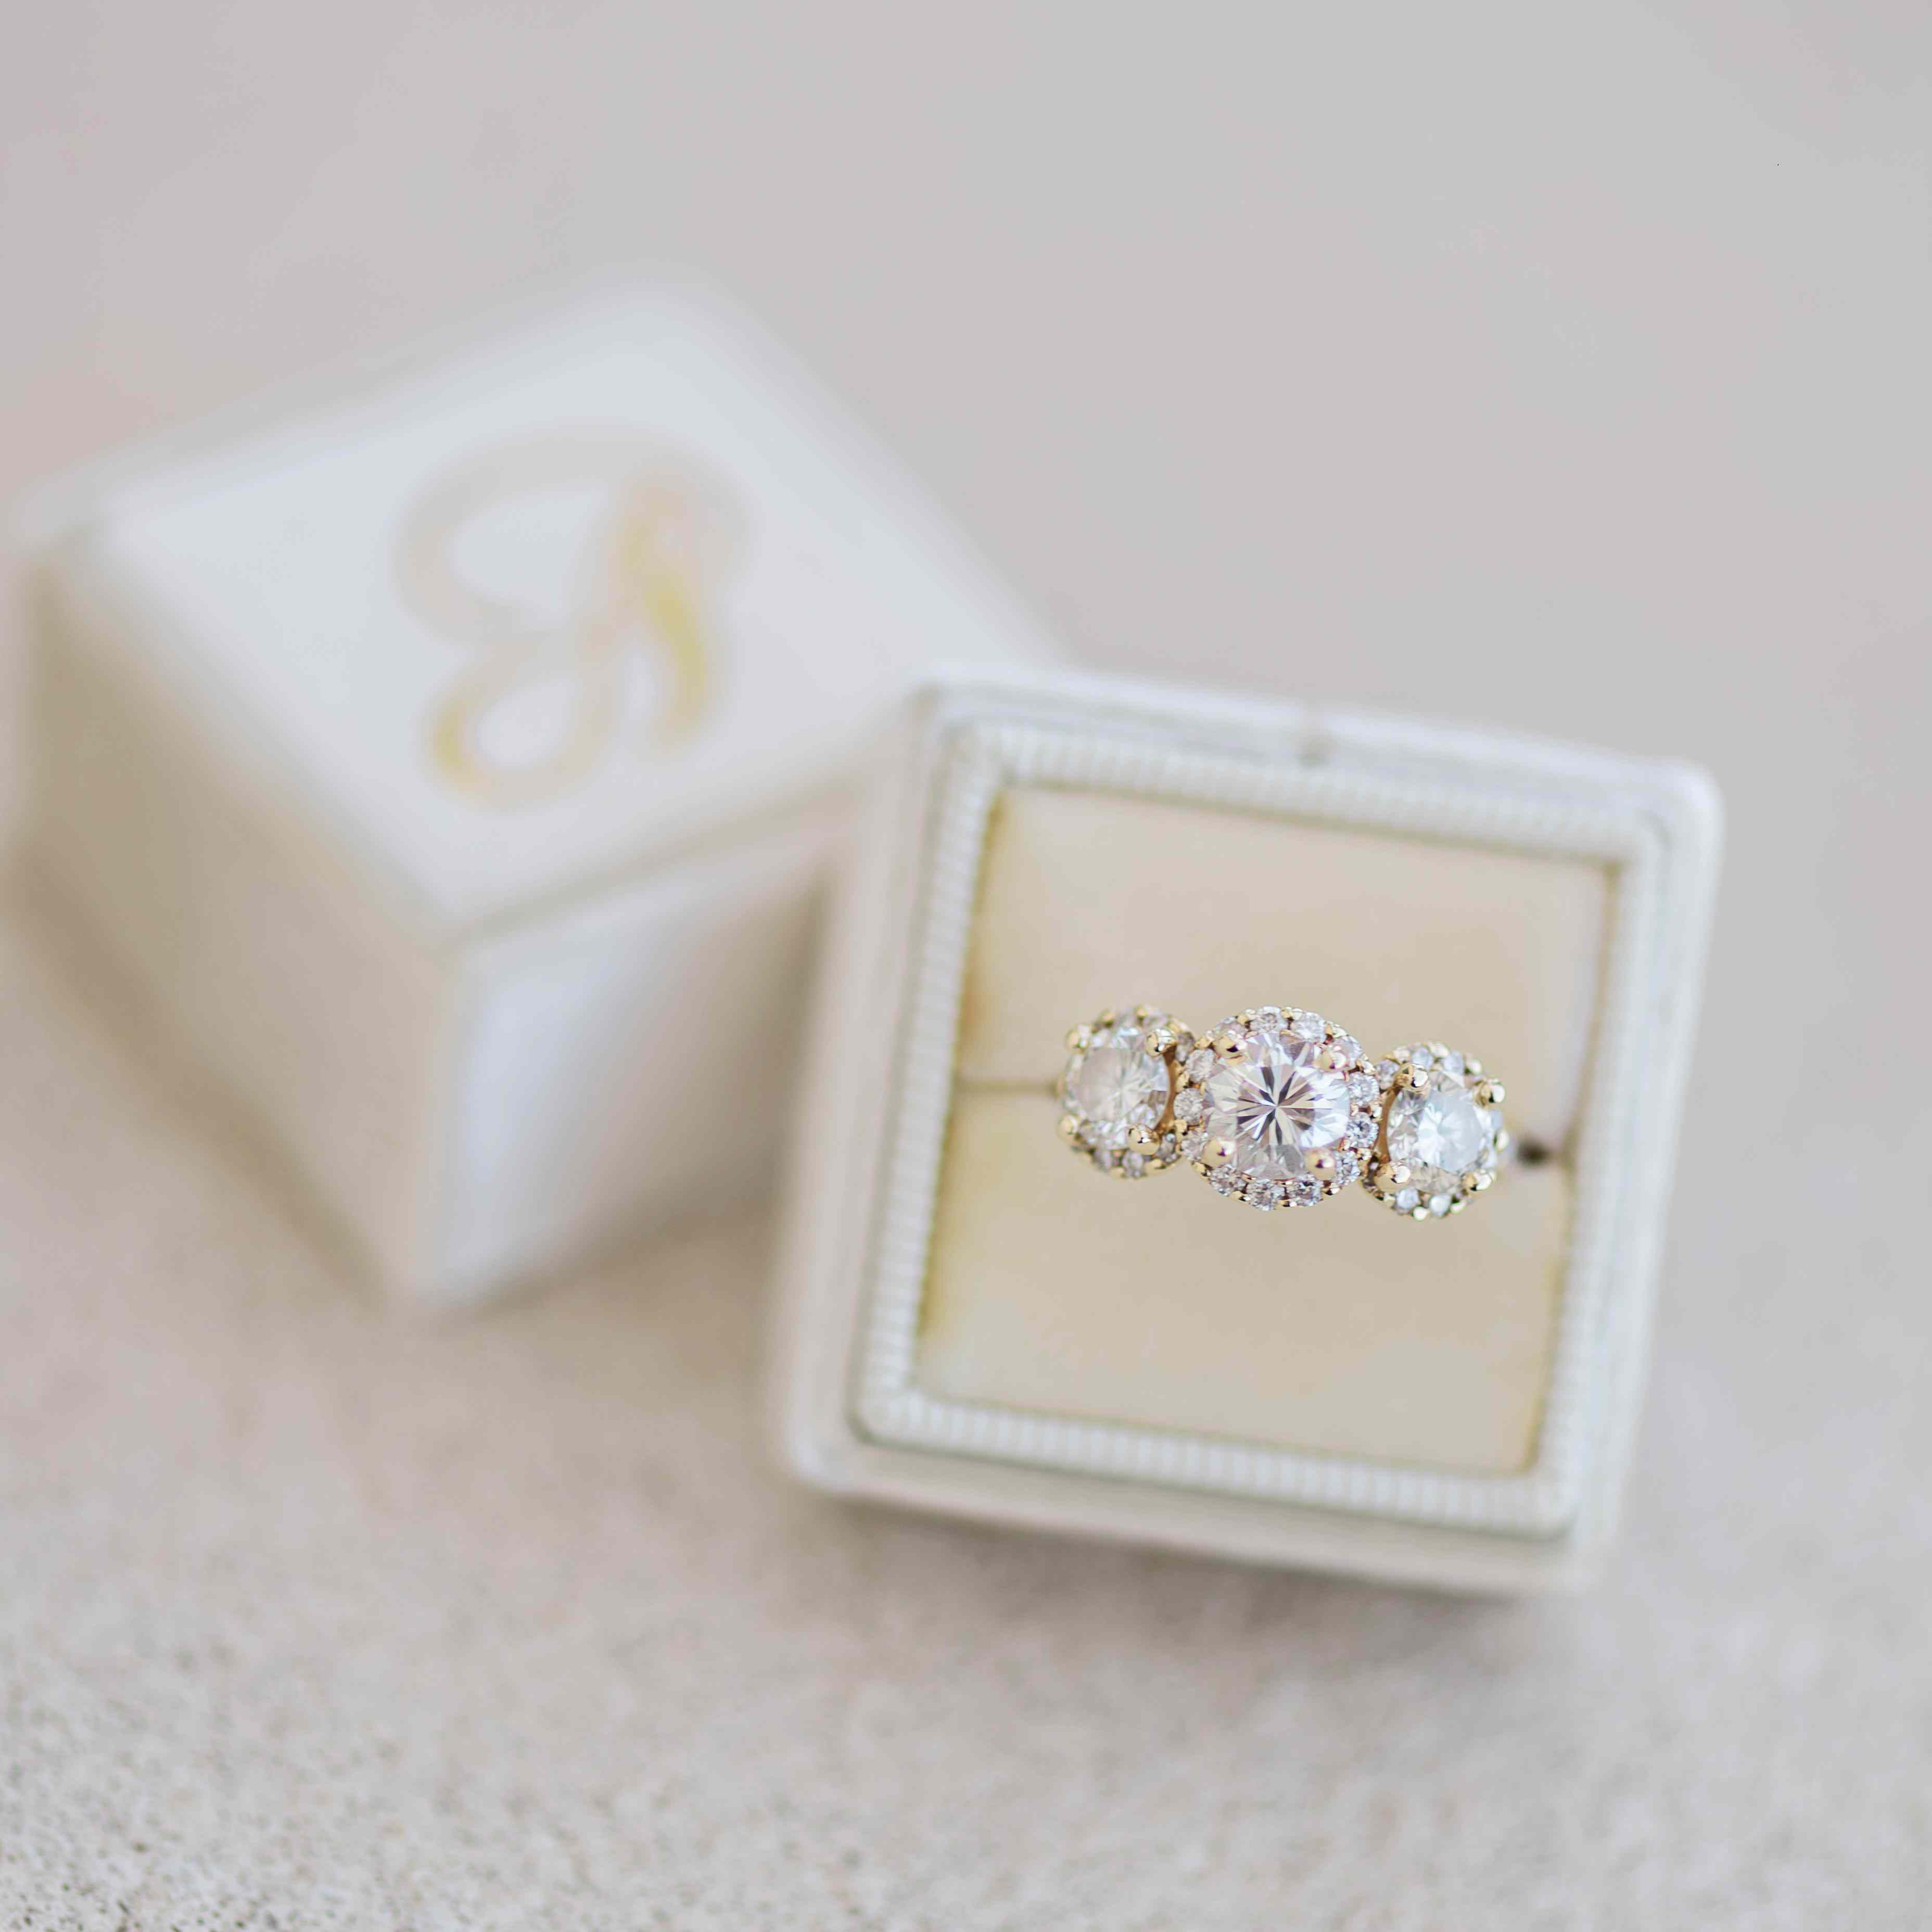 Three-Stone Engagement Rings That Will Make You Swoon